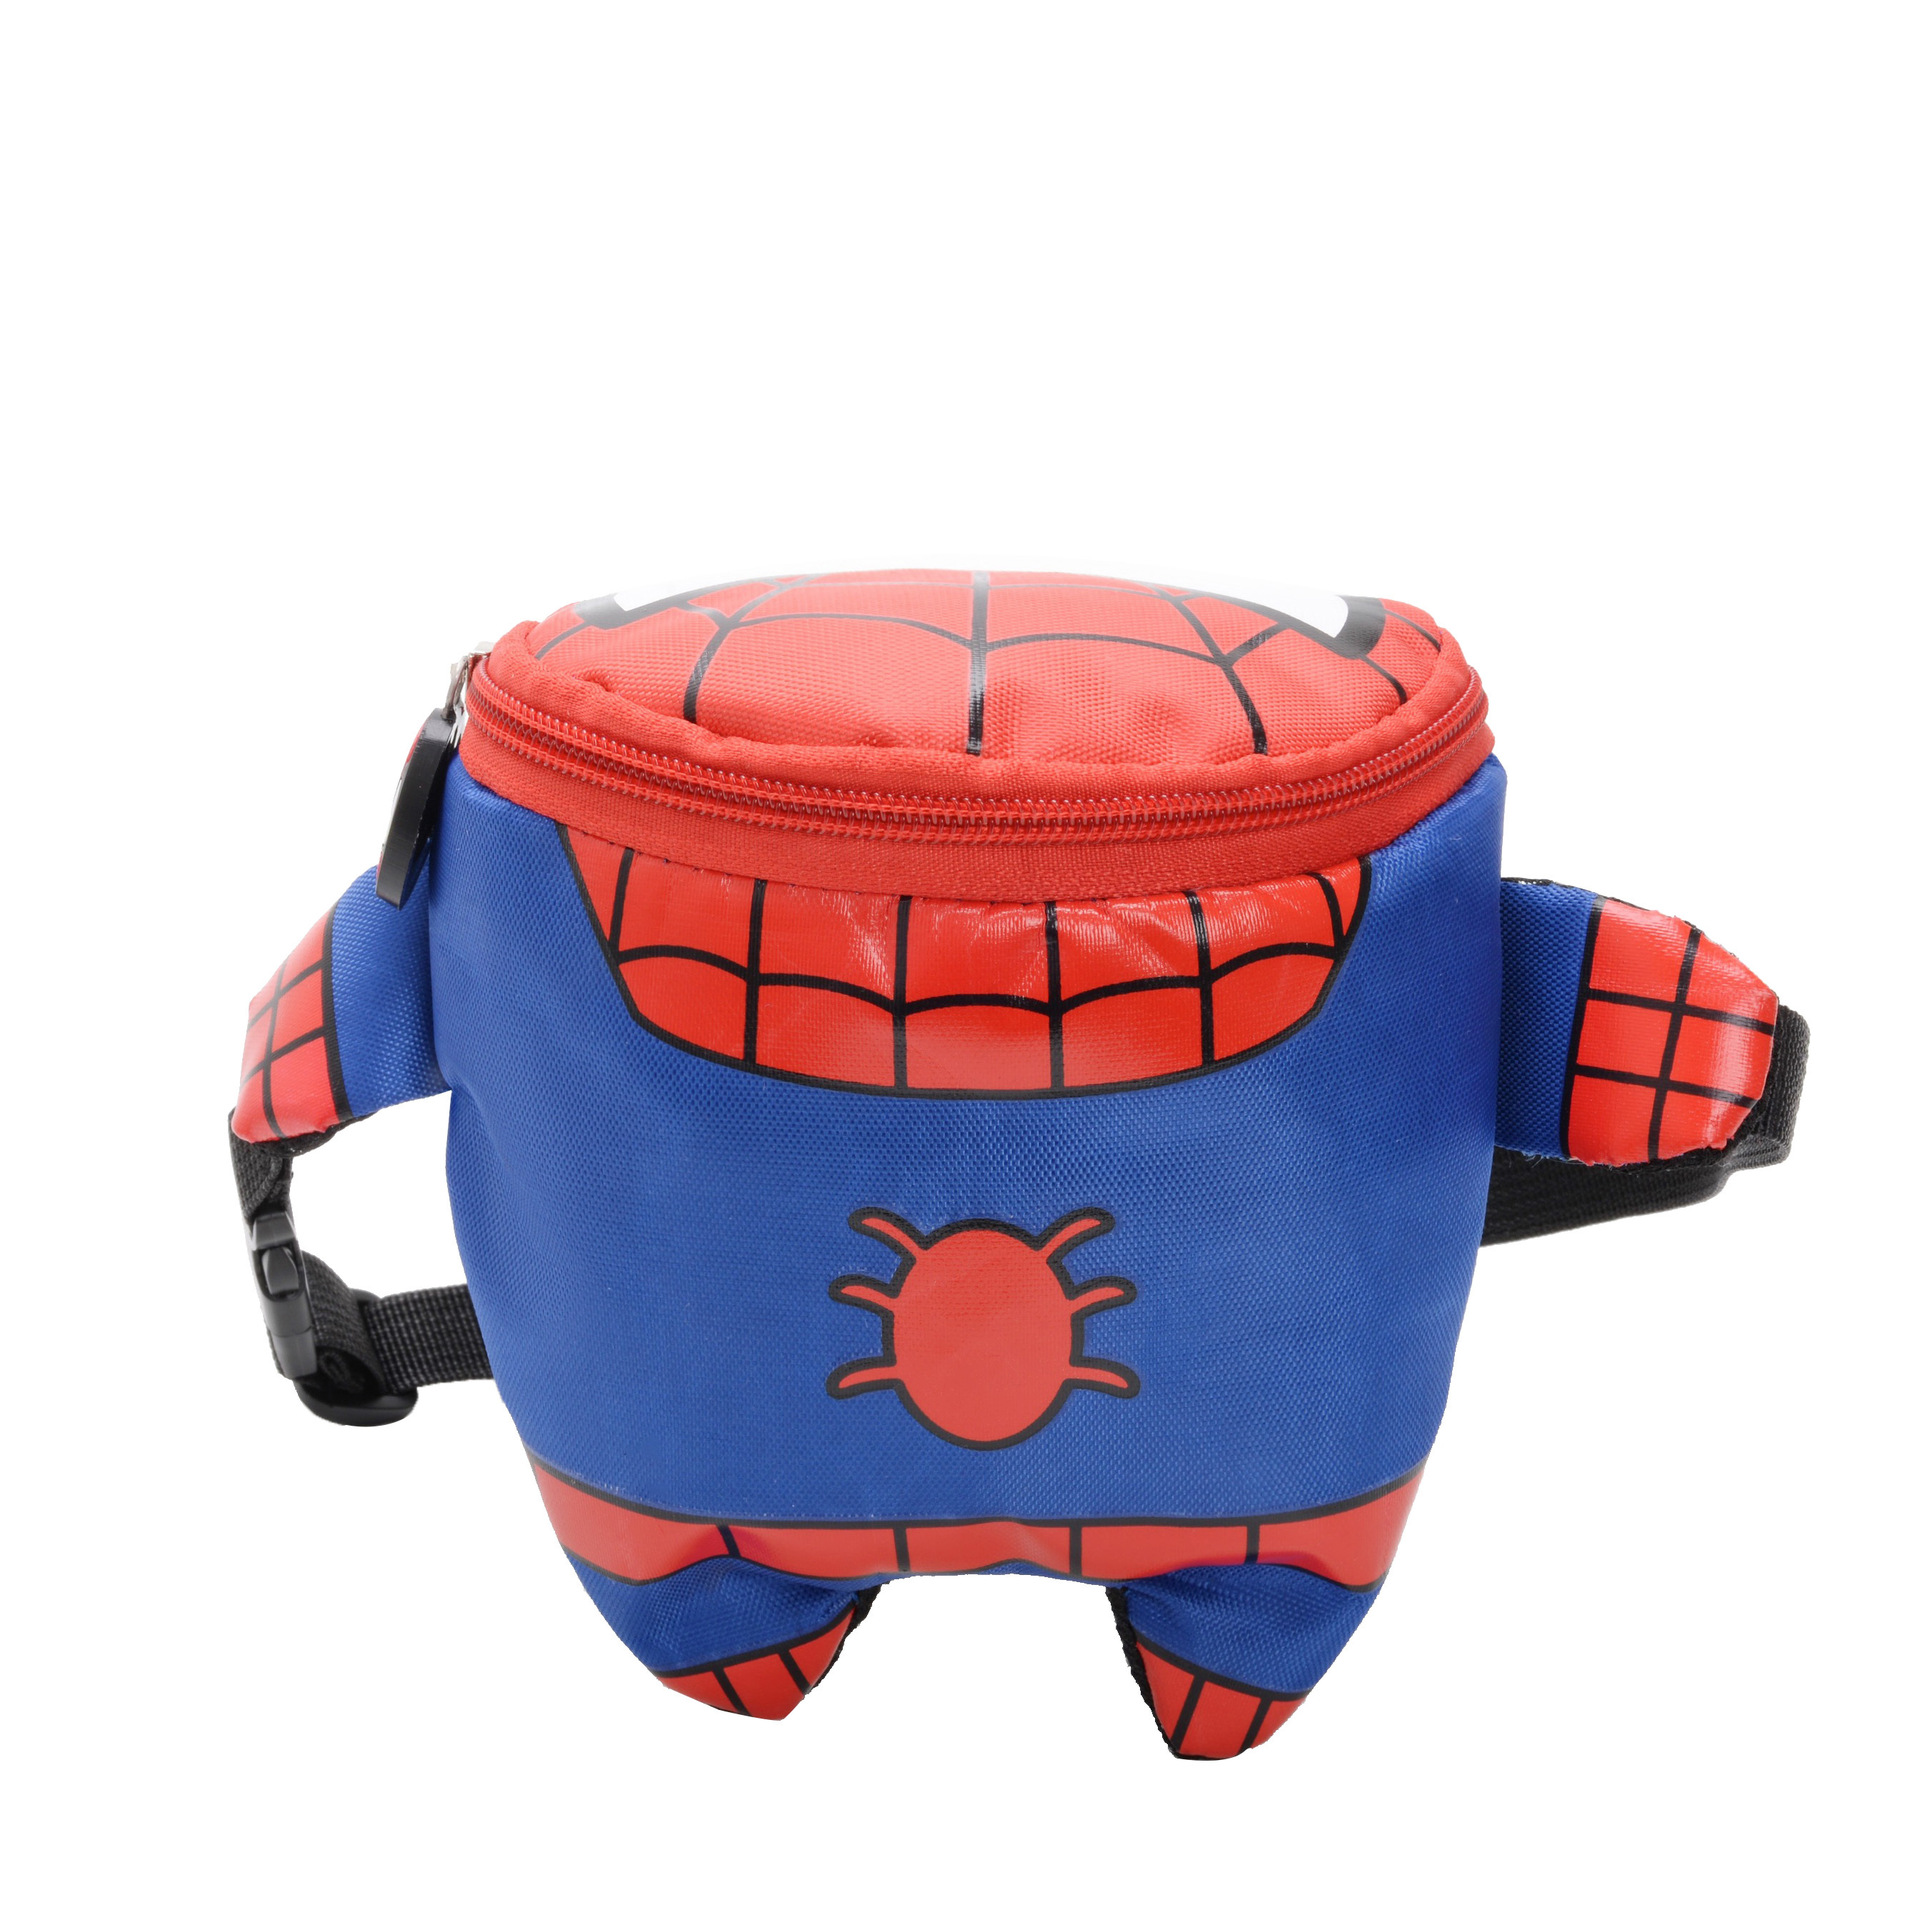 Kids Belt Bag Leg Waist Bag Fanny Pack Waist Purse Cartoon Boy Child Baby Cute Waist Bag Chest Bag Messenger Bag Men Chest Bag